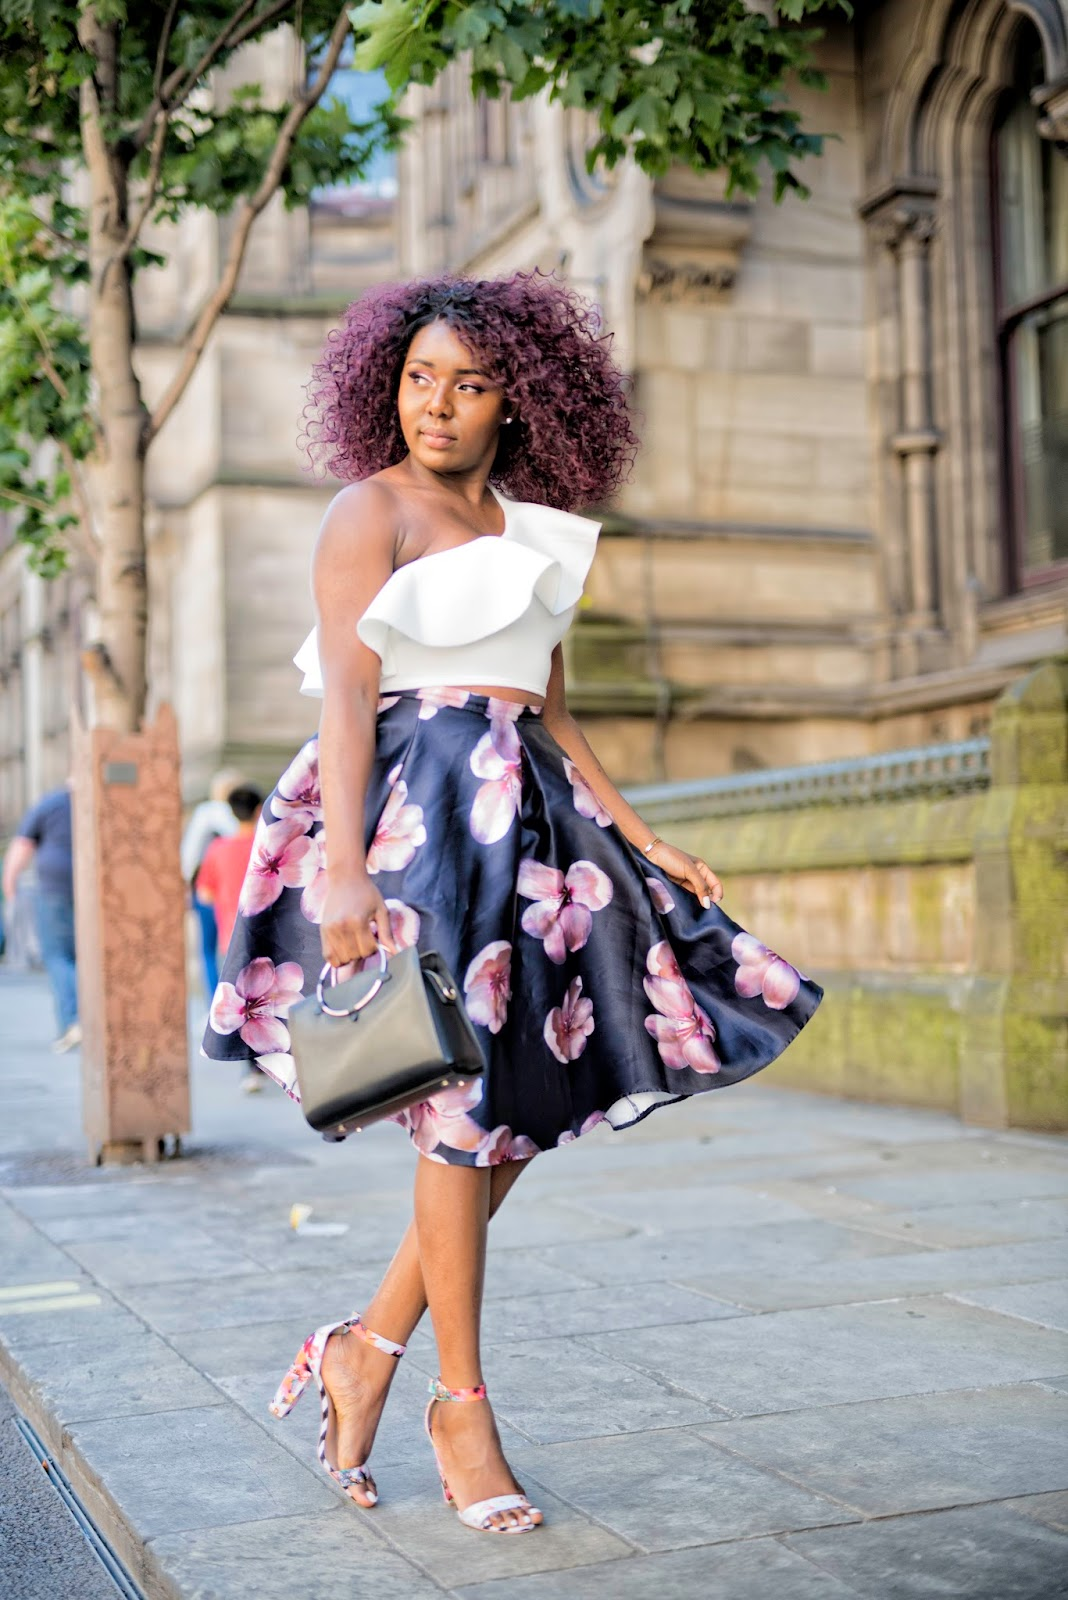 STEPHYLATELY| HOW TO STYLE A NAVY BLUE FLORAL PRINTED MIDI SKIRT